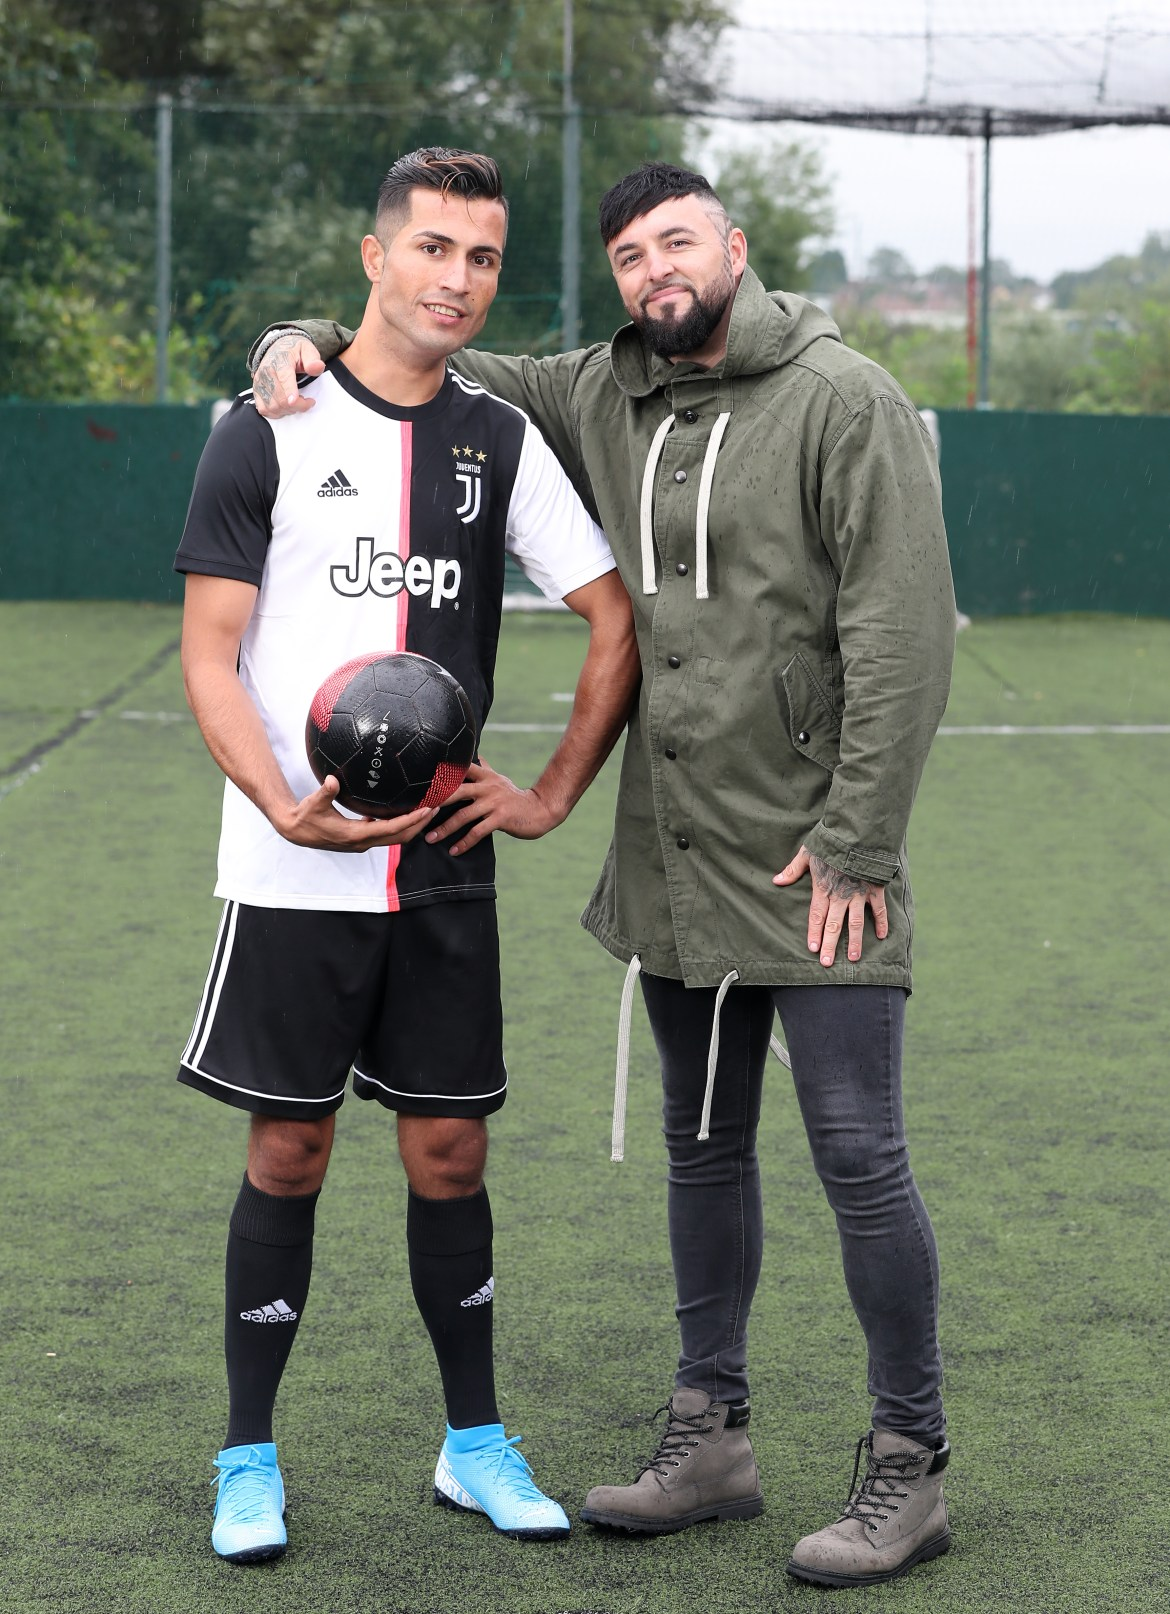 Shane plans to represent Biwar and turn him into a full-time Ronaldo lookalike in the future, appearing at parties and events when called upon